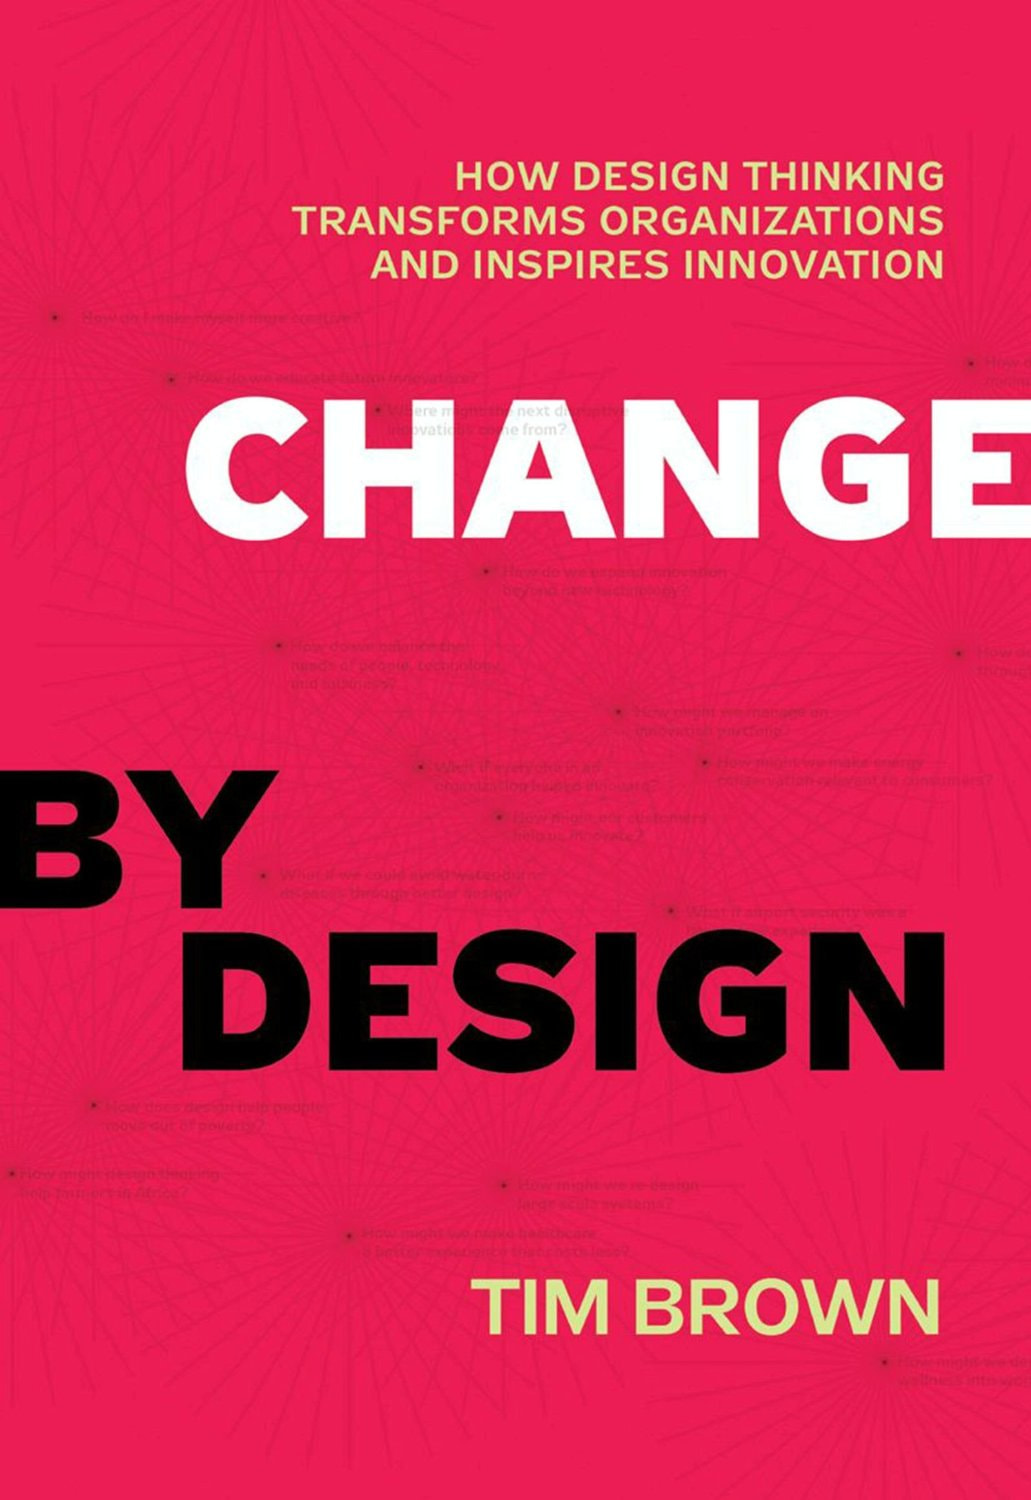 Change by Design: How Design Thinking Transforms Organizations and Inspires Innovation – Tim Brown